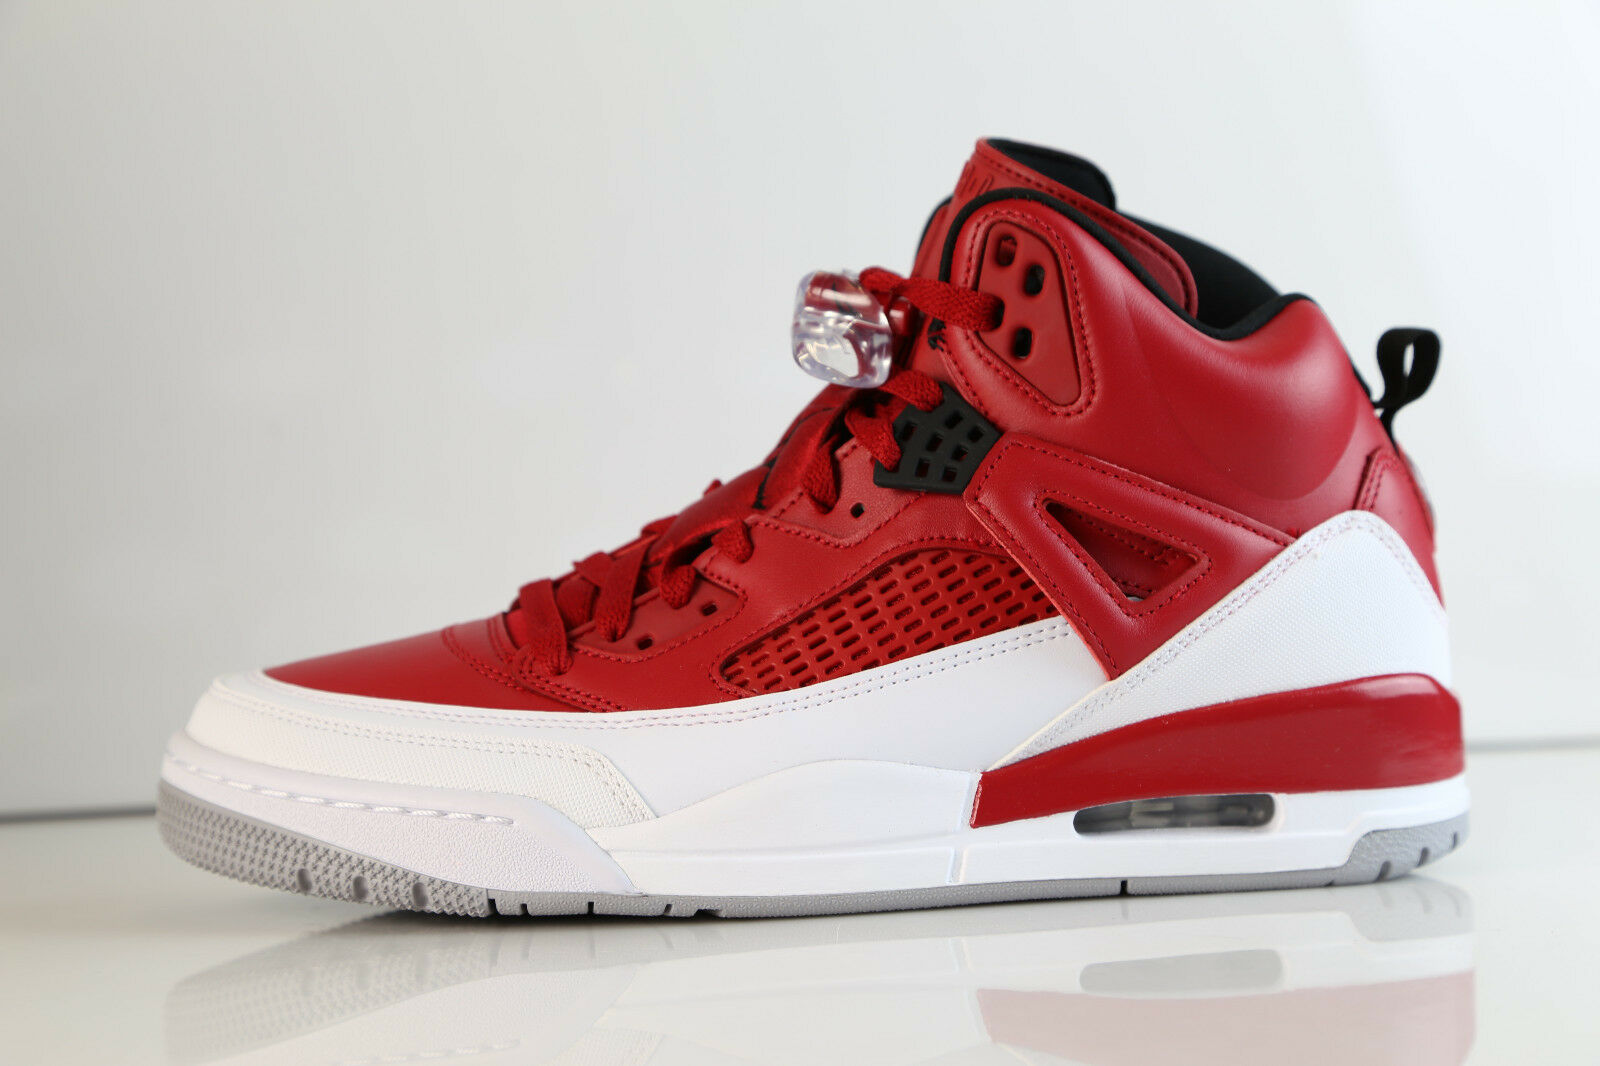 Nike Air Jordan Spizike Gym Red White Wolf Grey 315371-603 8-12 10 1 11